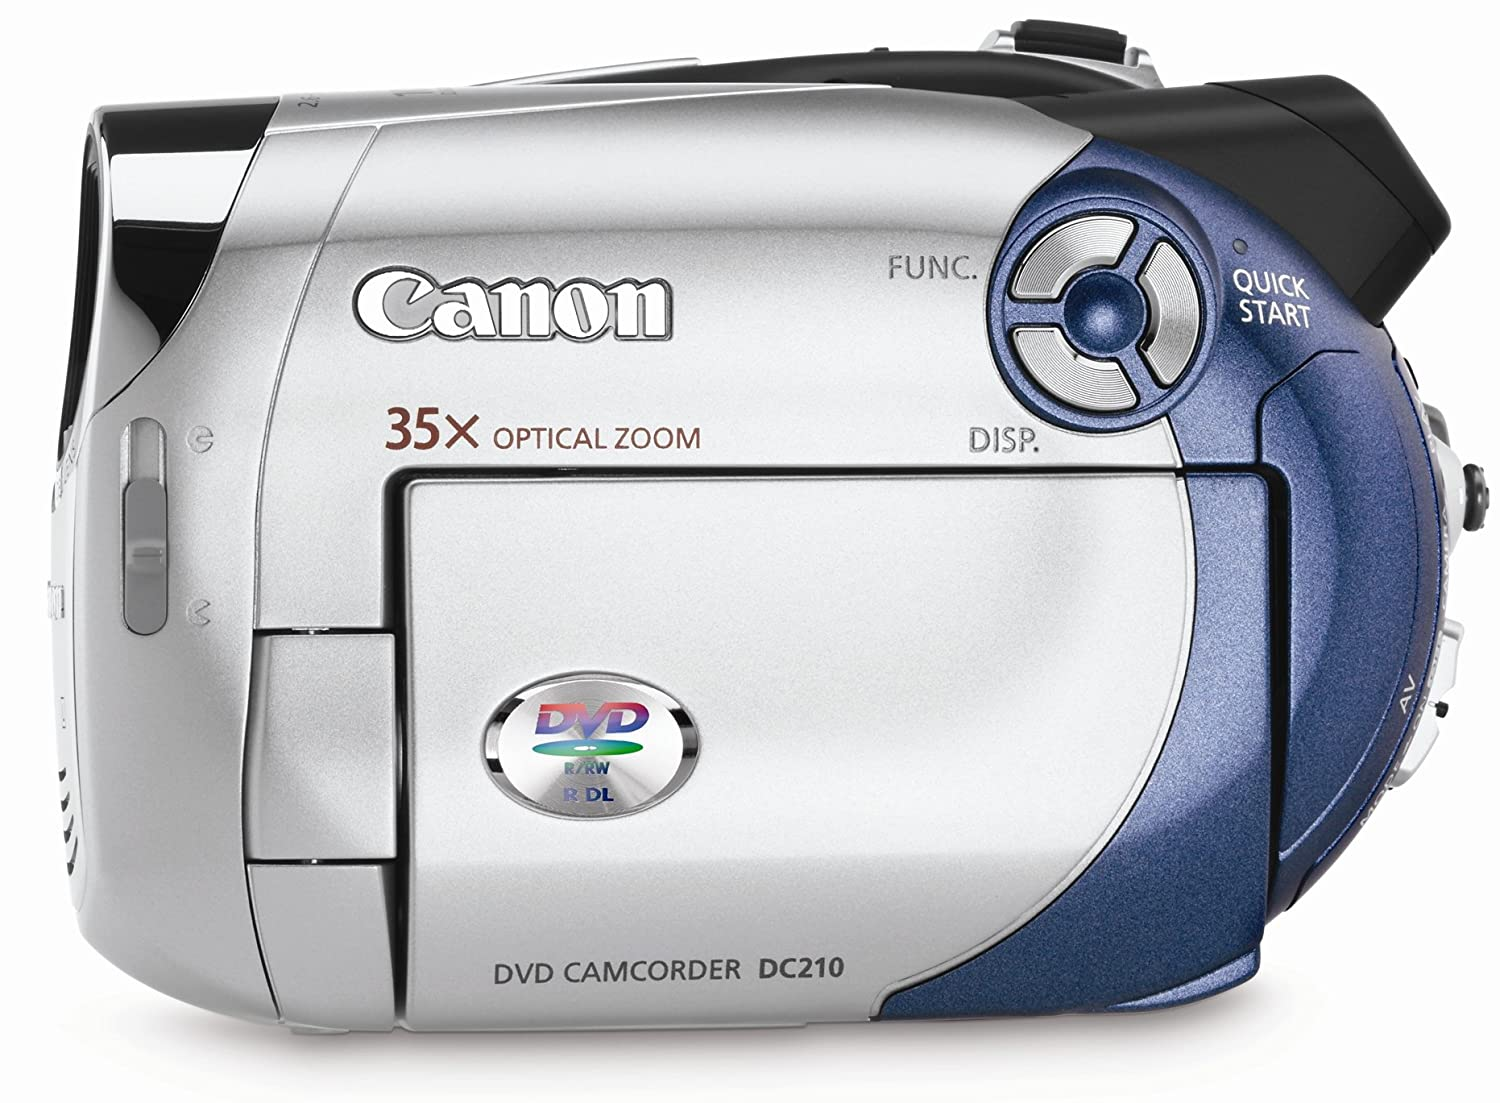 amazon com canon dc210 dvd camcorder with 35x optical zoom rh amazon com Canon DC210 Charger Canon DC210 Charger